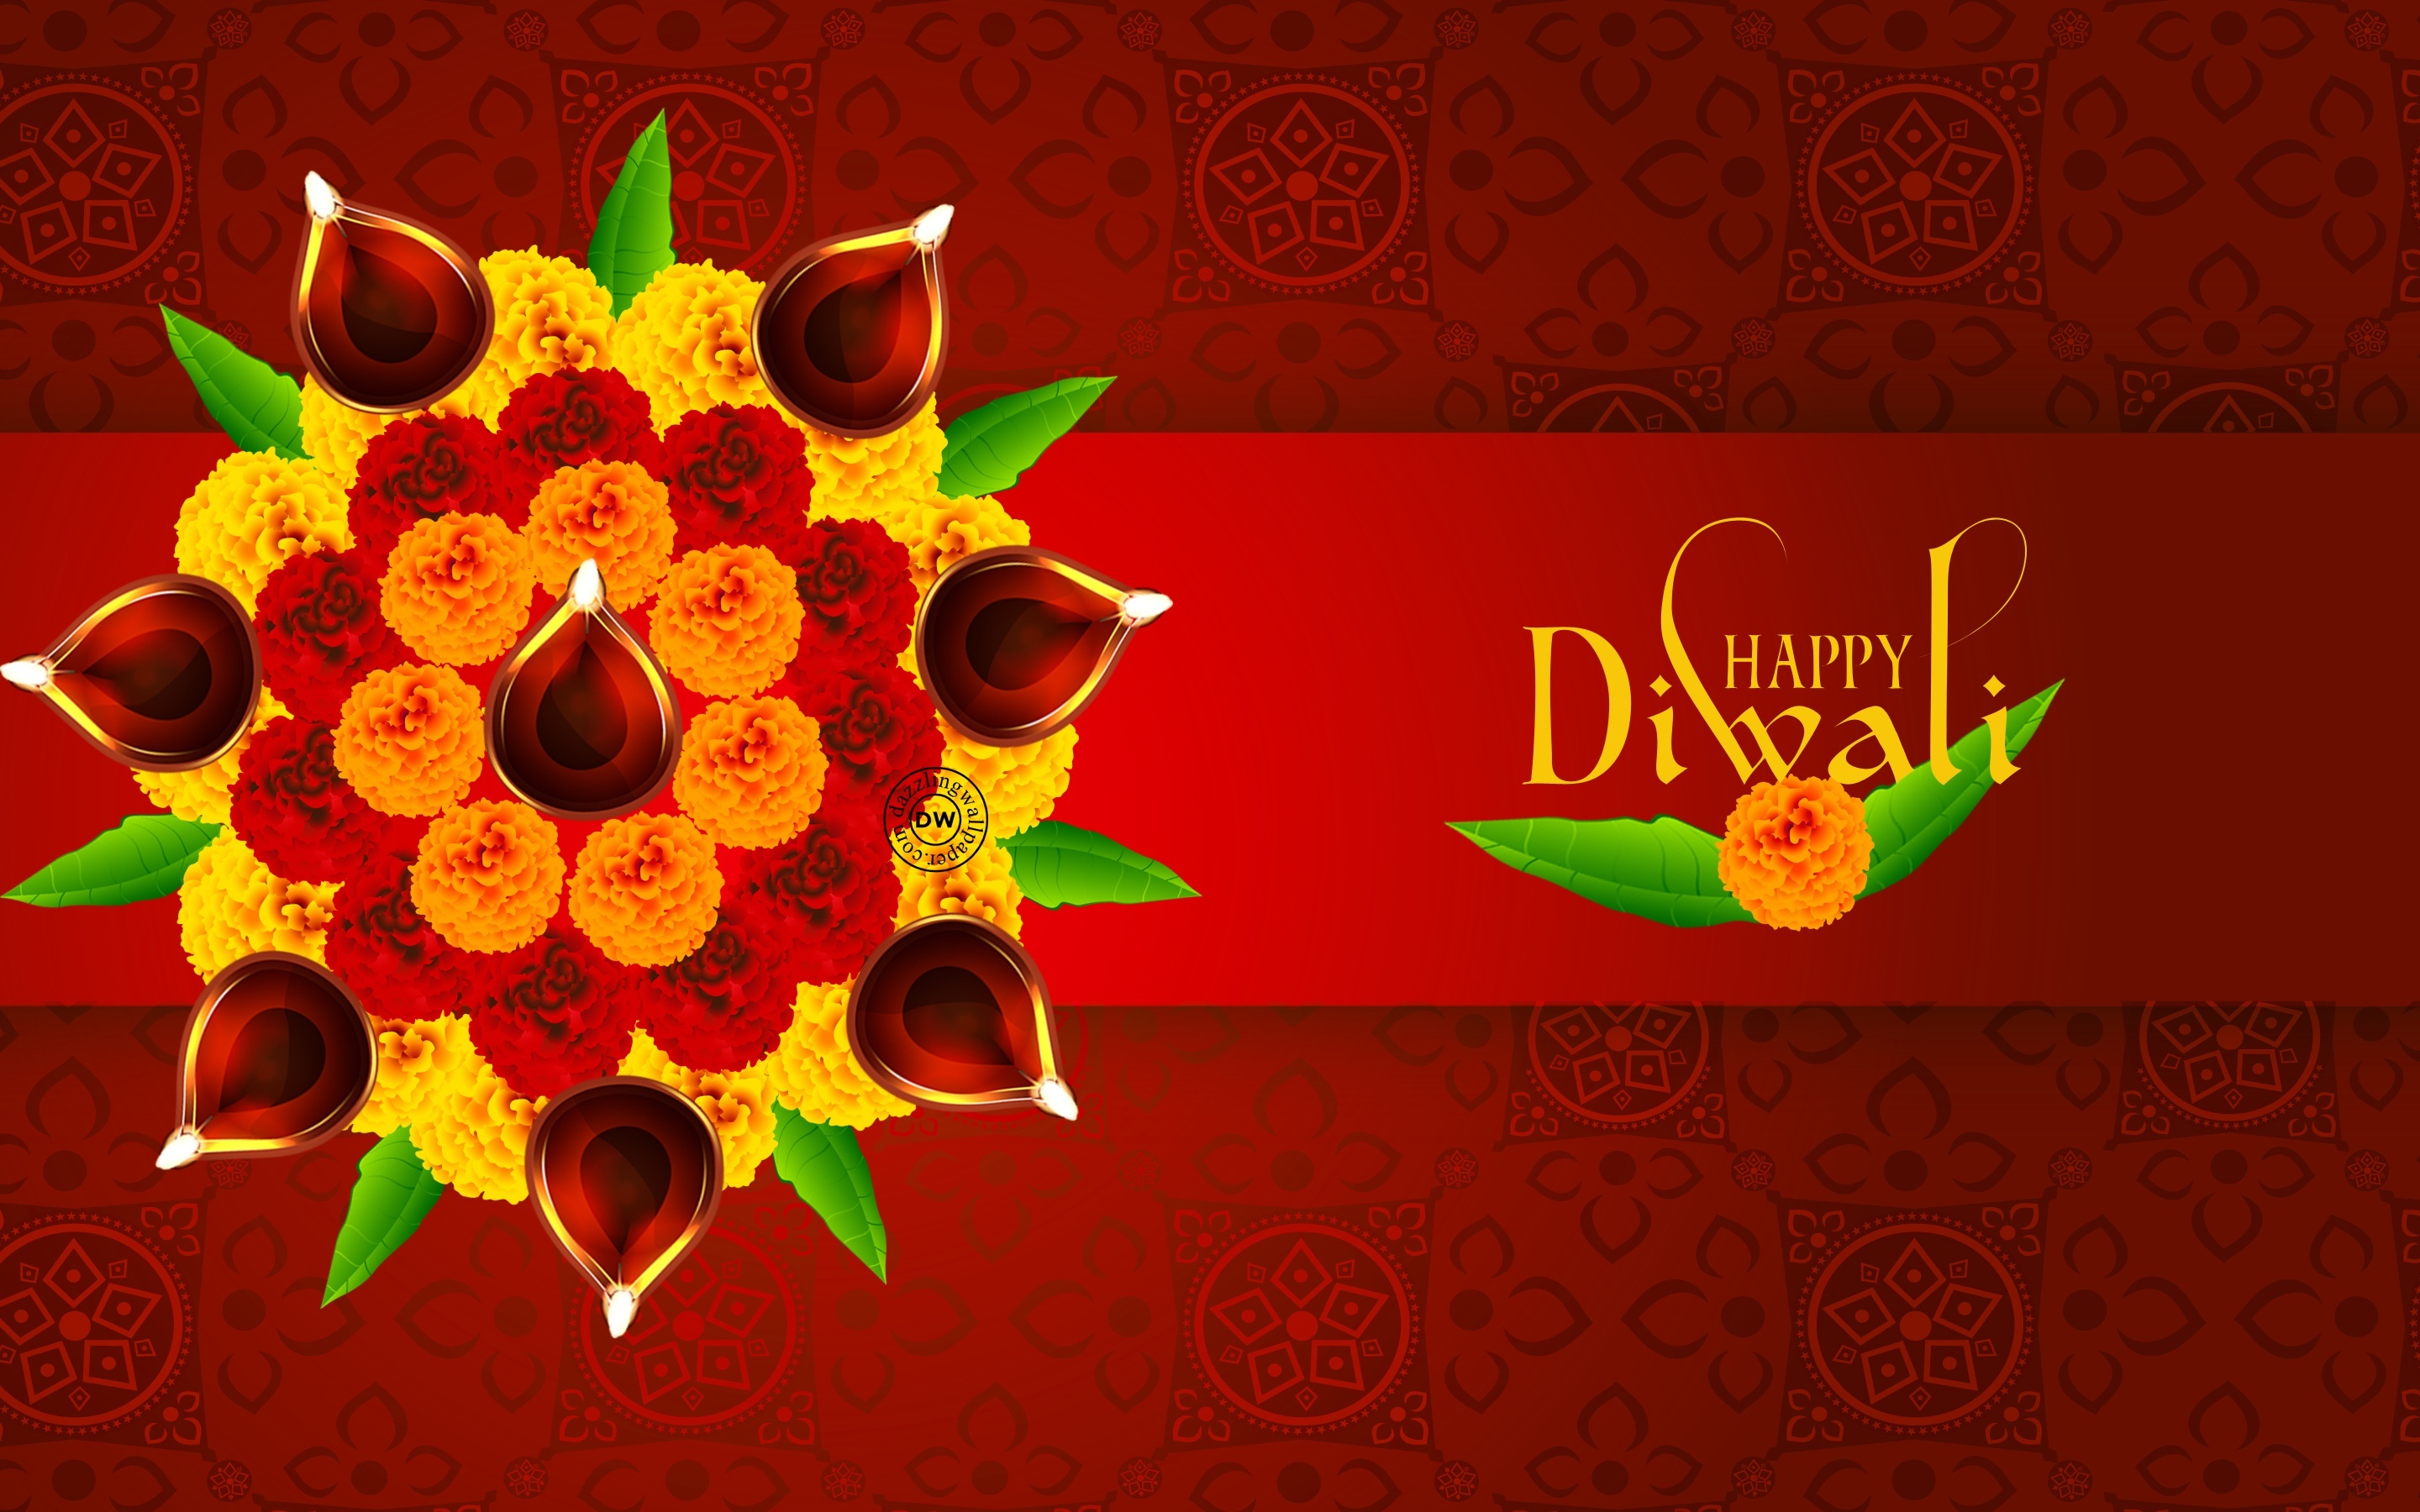 Happy Diwali Wallpapers And Backgrounds: Happy Diwali Images 2017